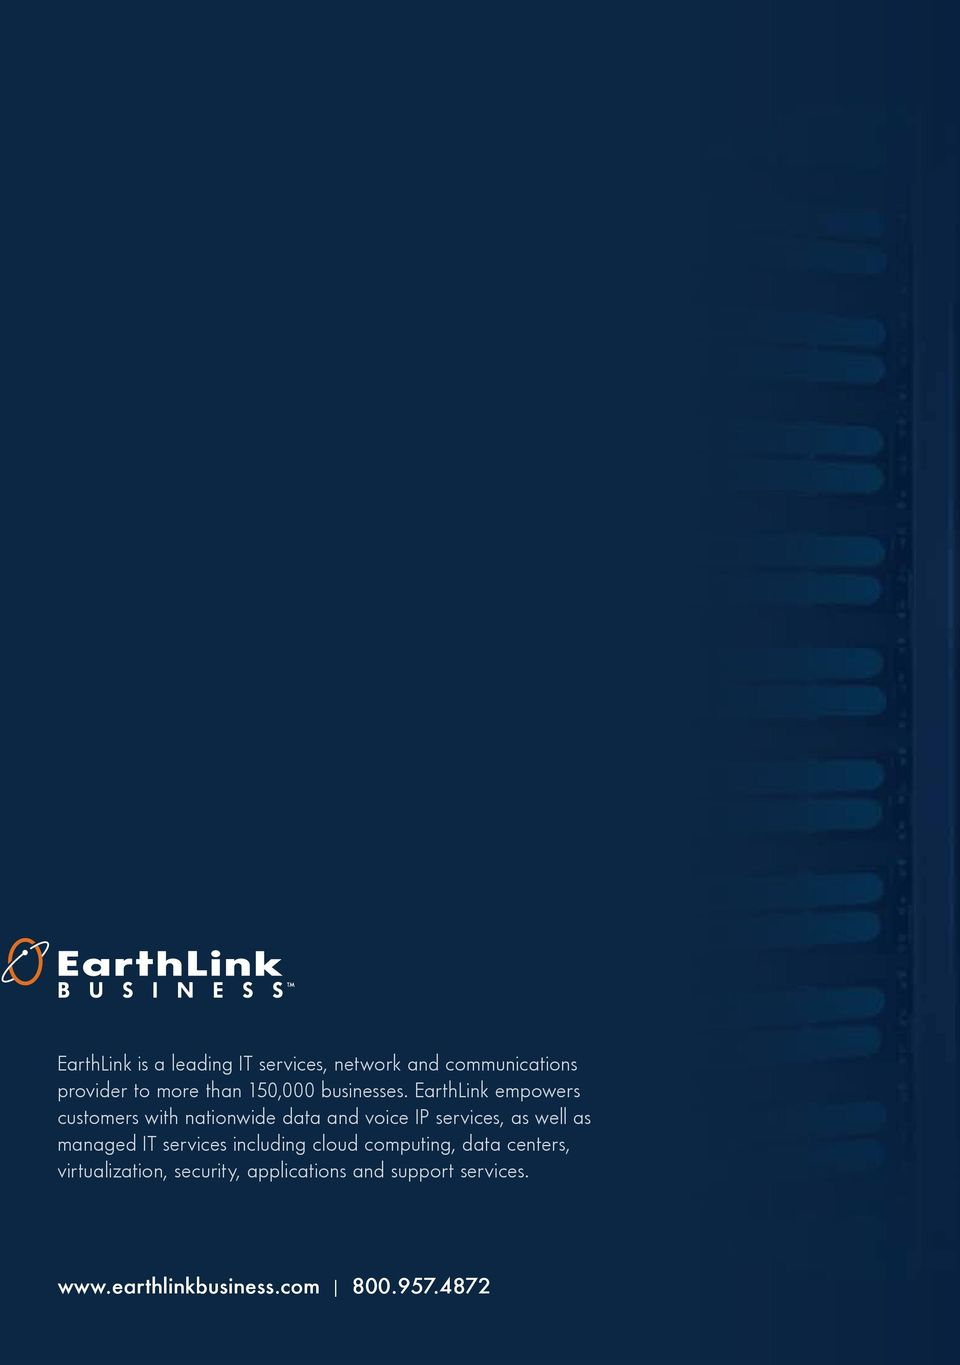 EarthLink empowers customers with nationwide data and voice IP services, as well as